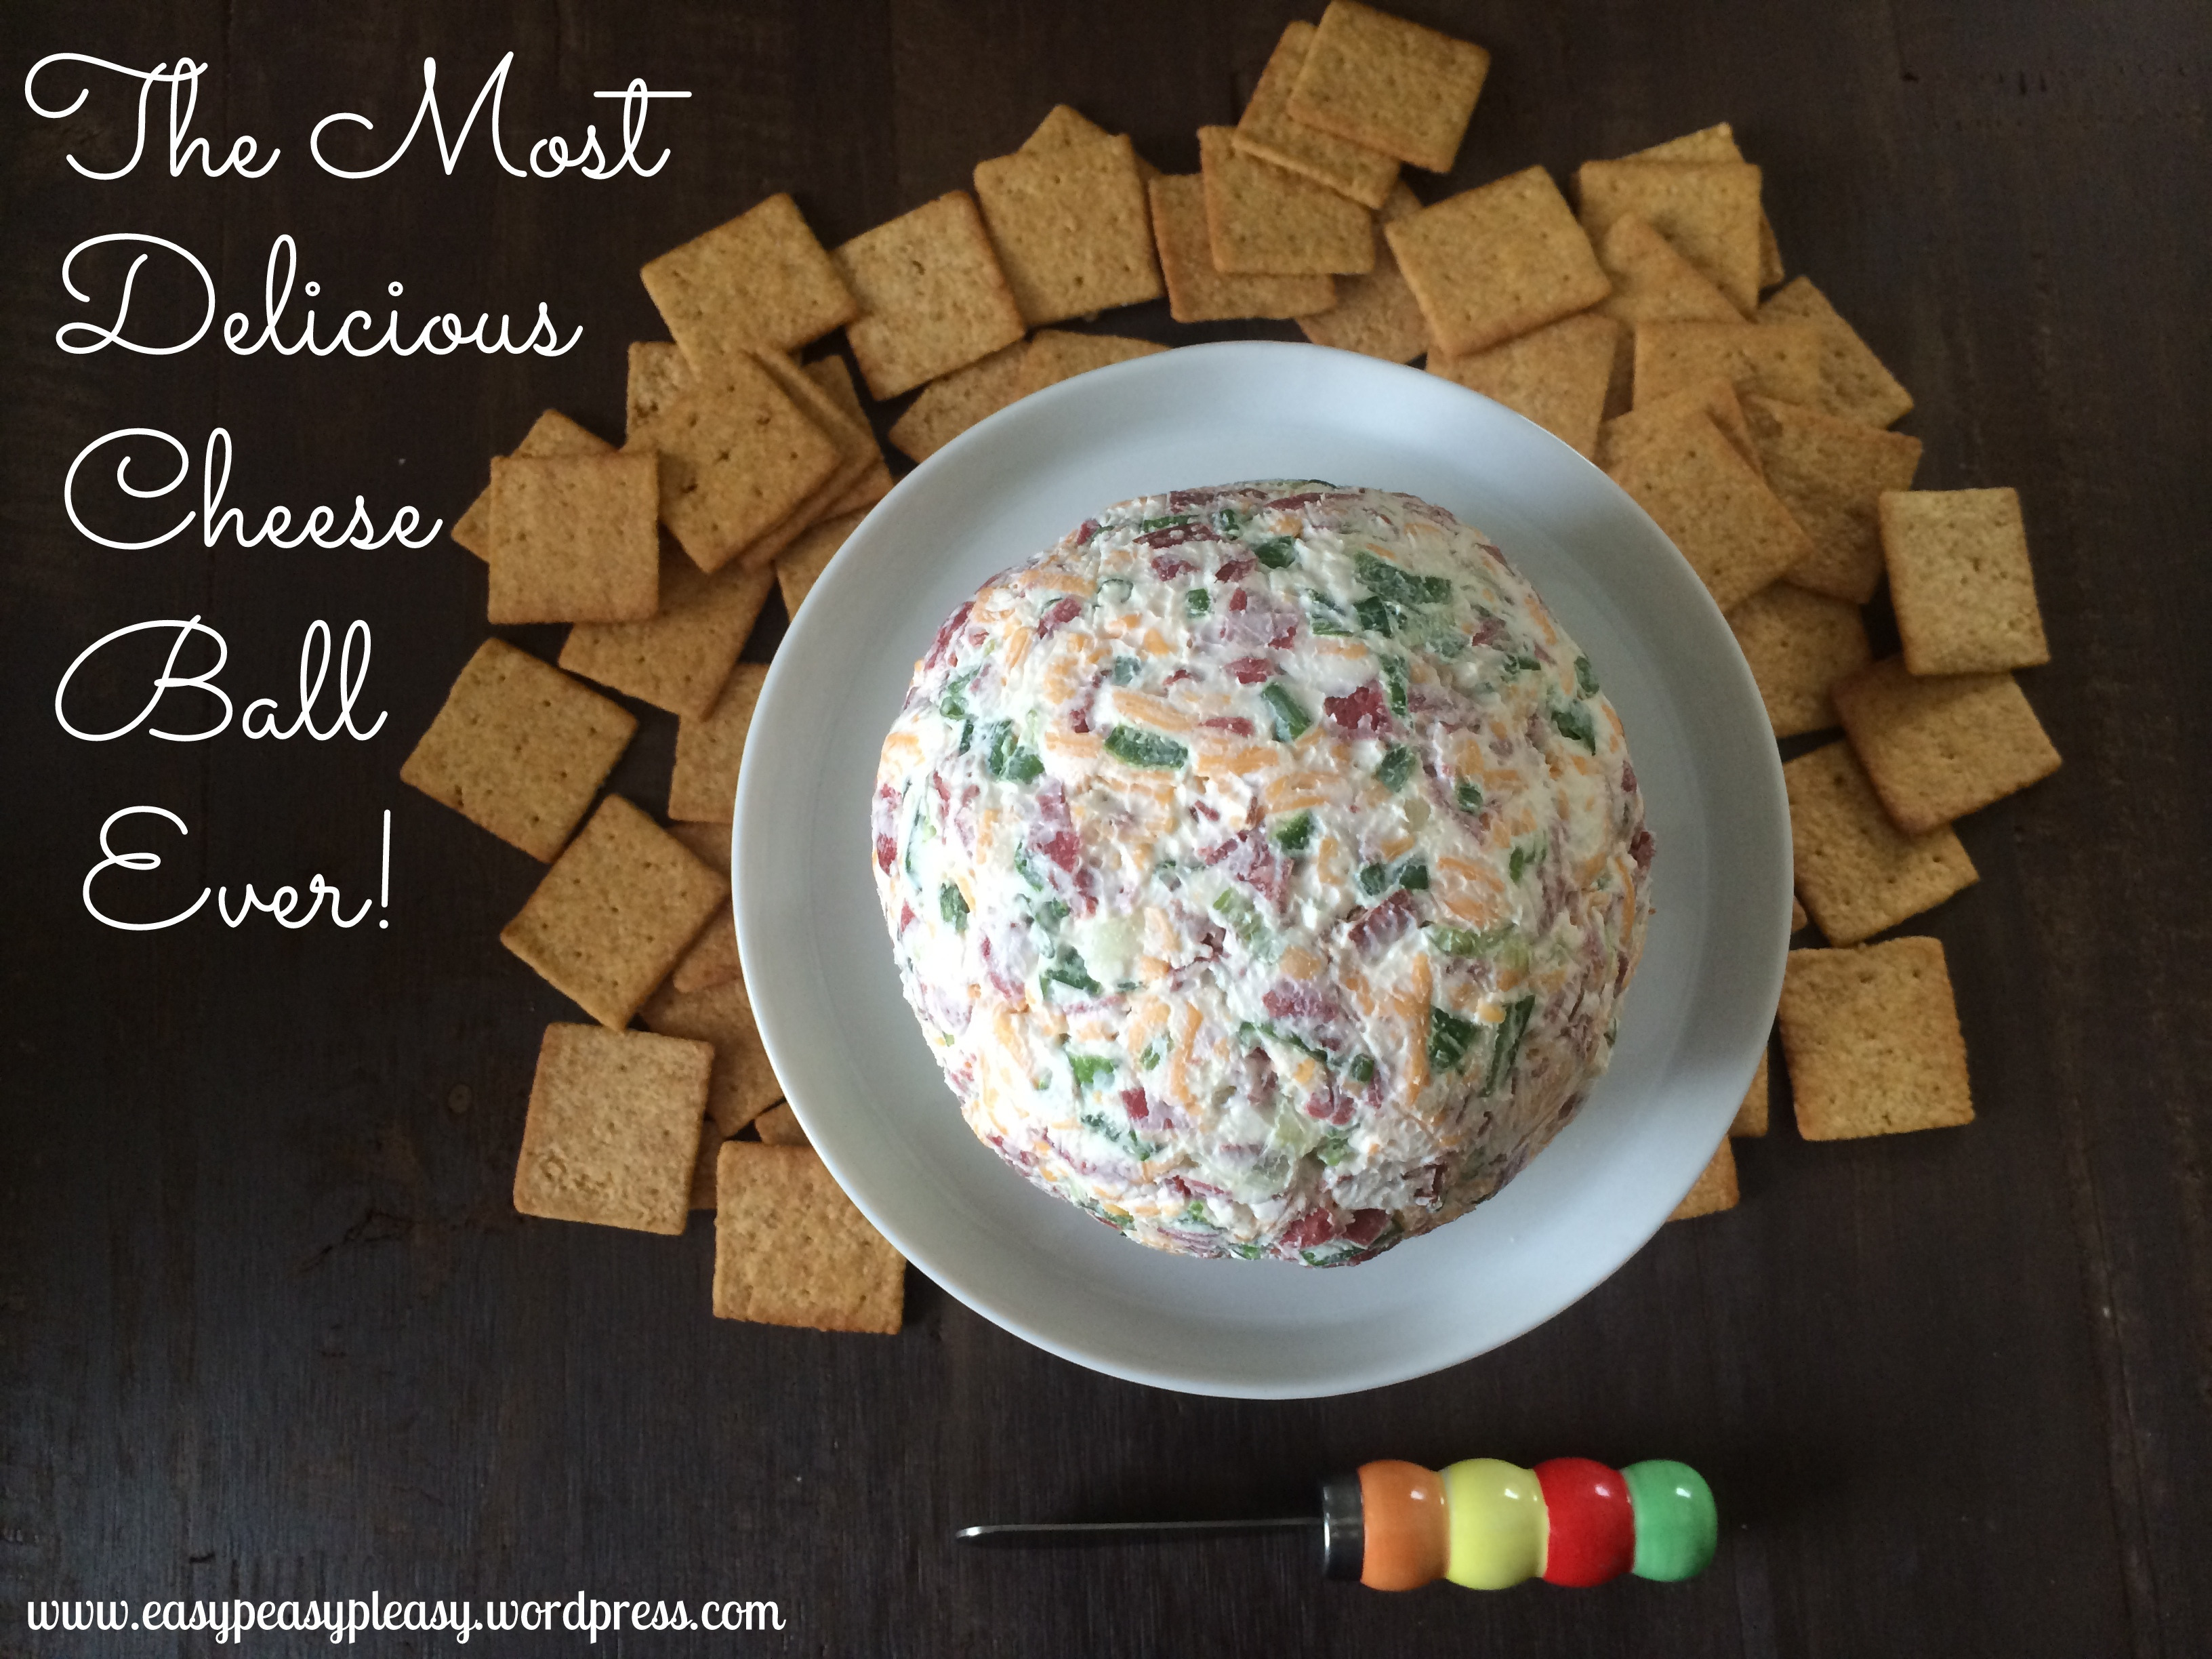 The most Delicious Cheese Ball Ever using only 4 ingredients